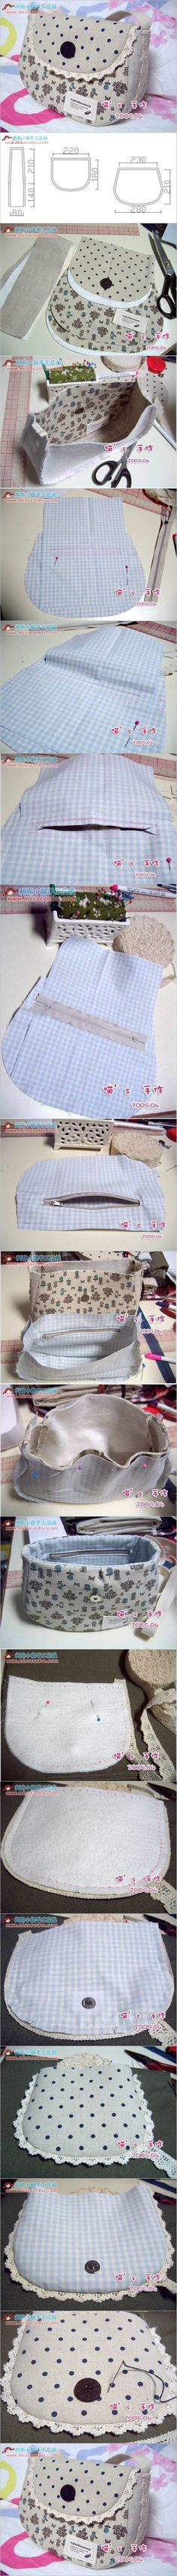 How to Sew a Simple Summer Handbag (Diy Bag) Diy Sewing Projects, Sewing Tutorials, Sewing Crafts, Sewing Diy, Sewing Hacks, Fabric Handbags, Fabric Bags, Purse Patterns, Sewing Patterns